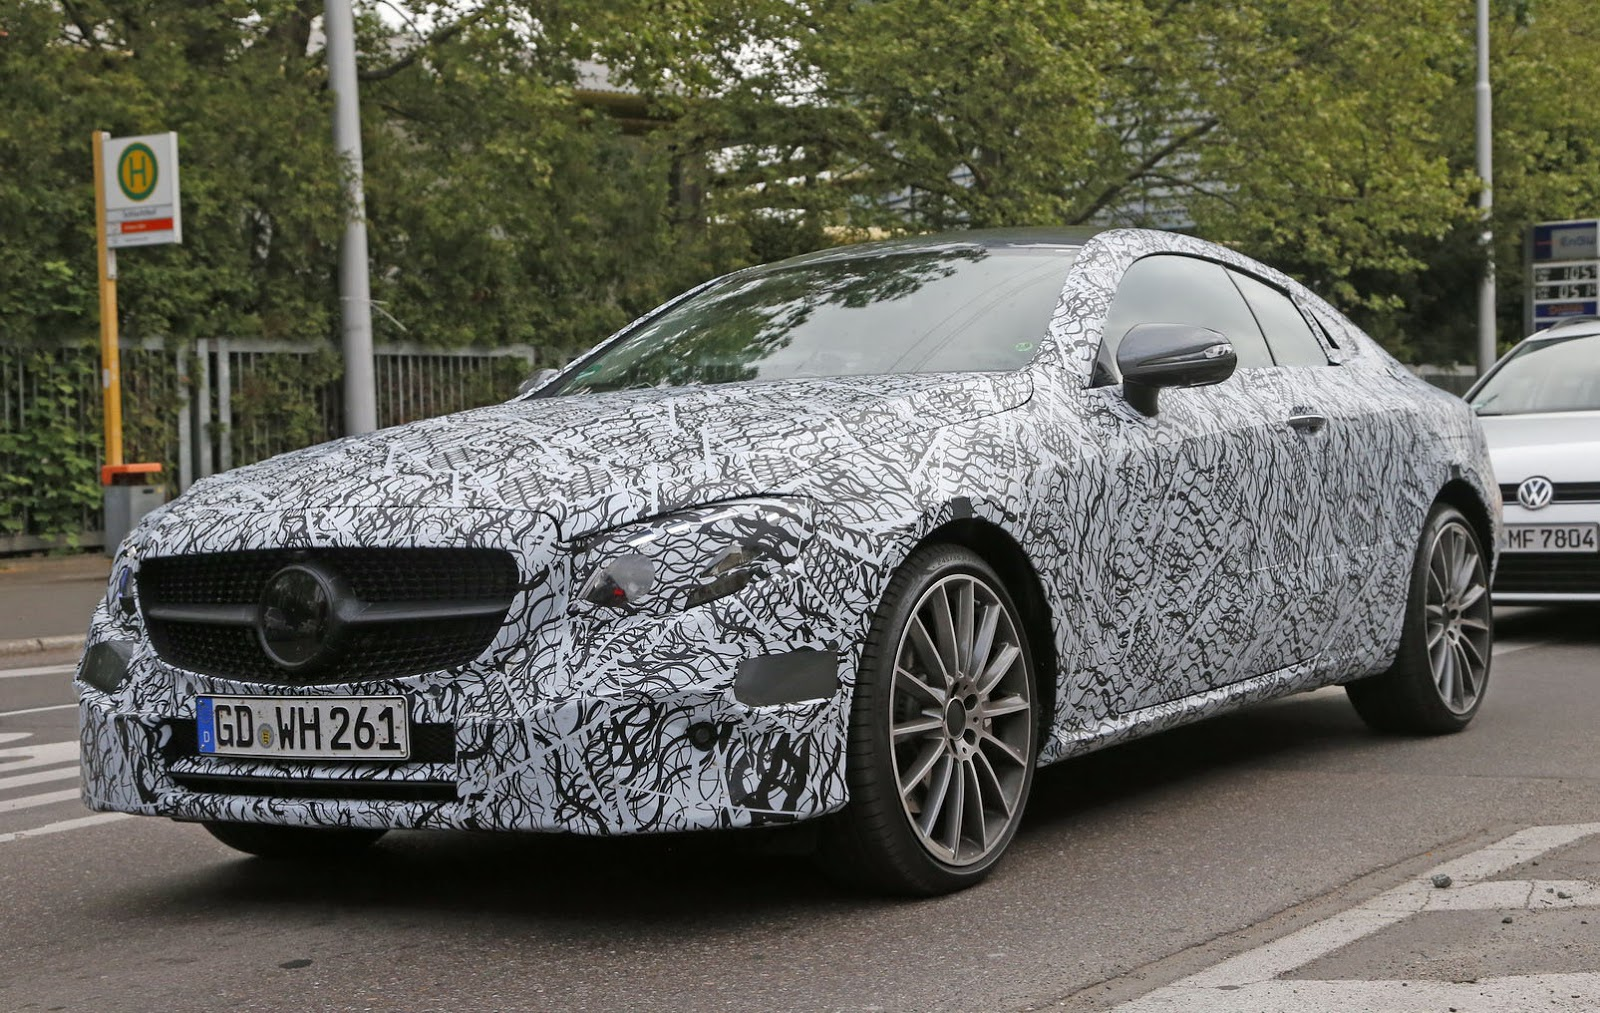 2018 Mercedes Benz E Class photo - 5